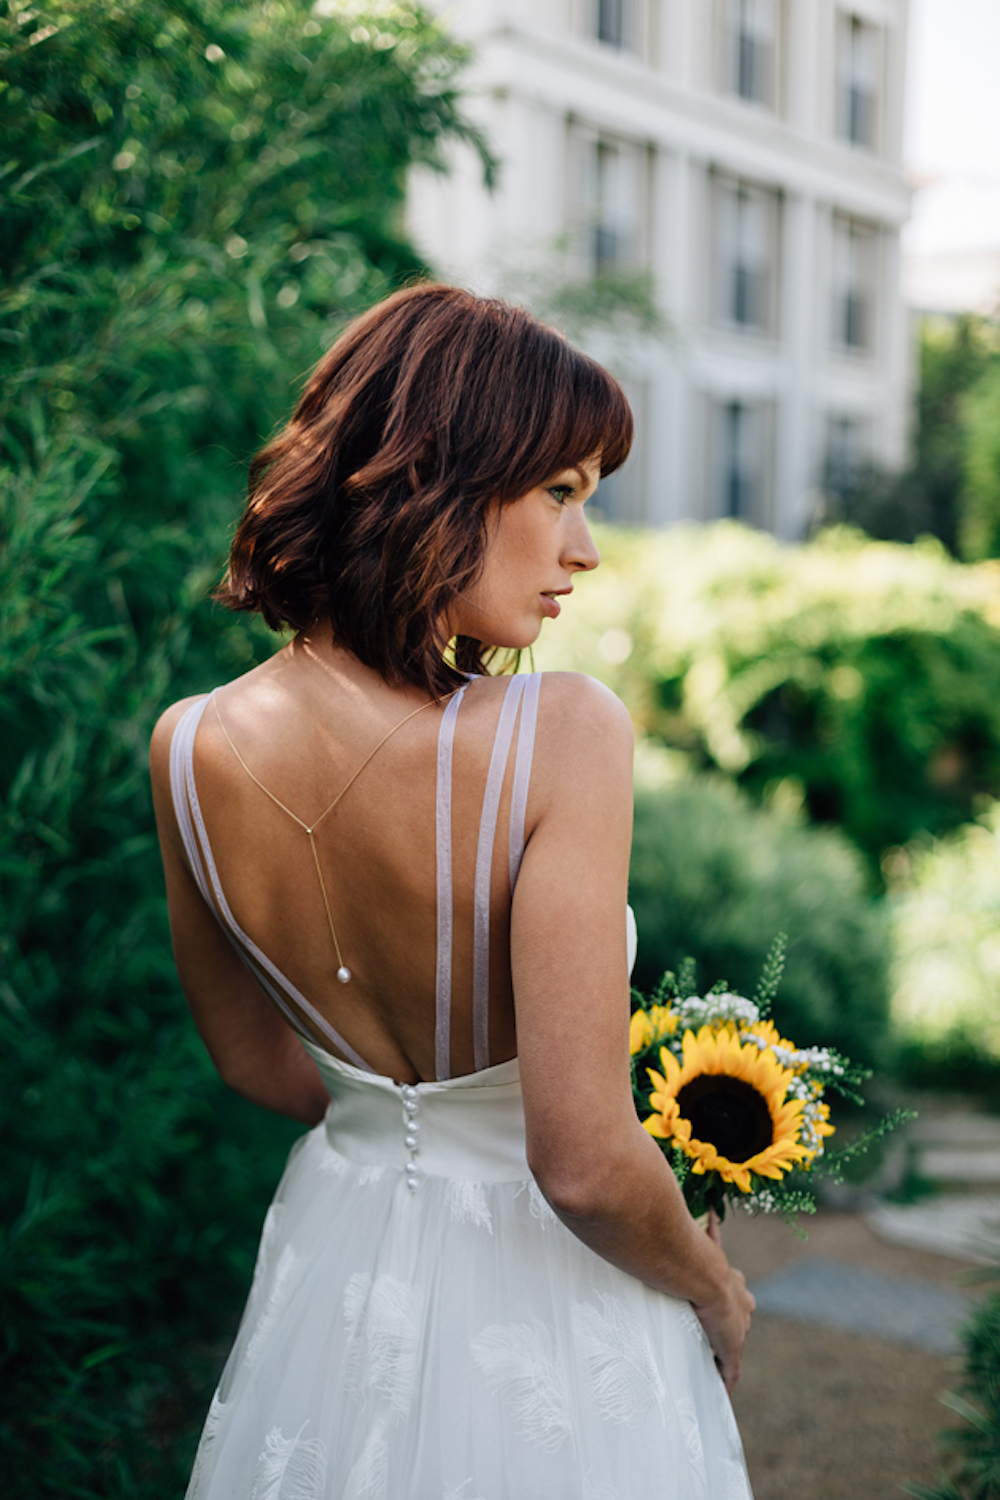 parisian-inspired-blog-mariagepierreatelier-photographe-mariage-paris-038.jpg